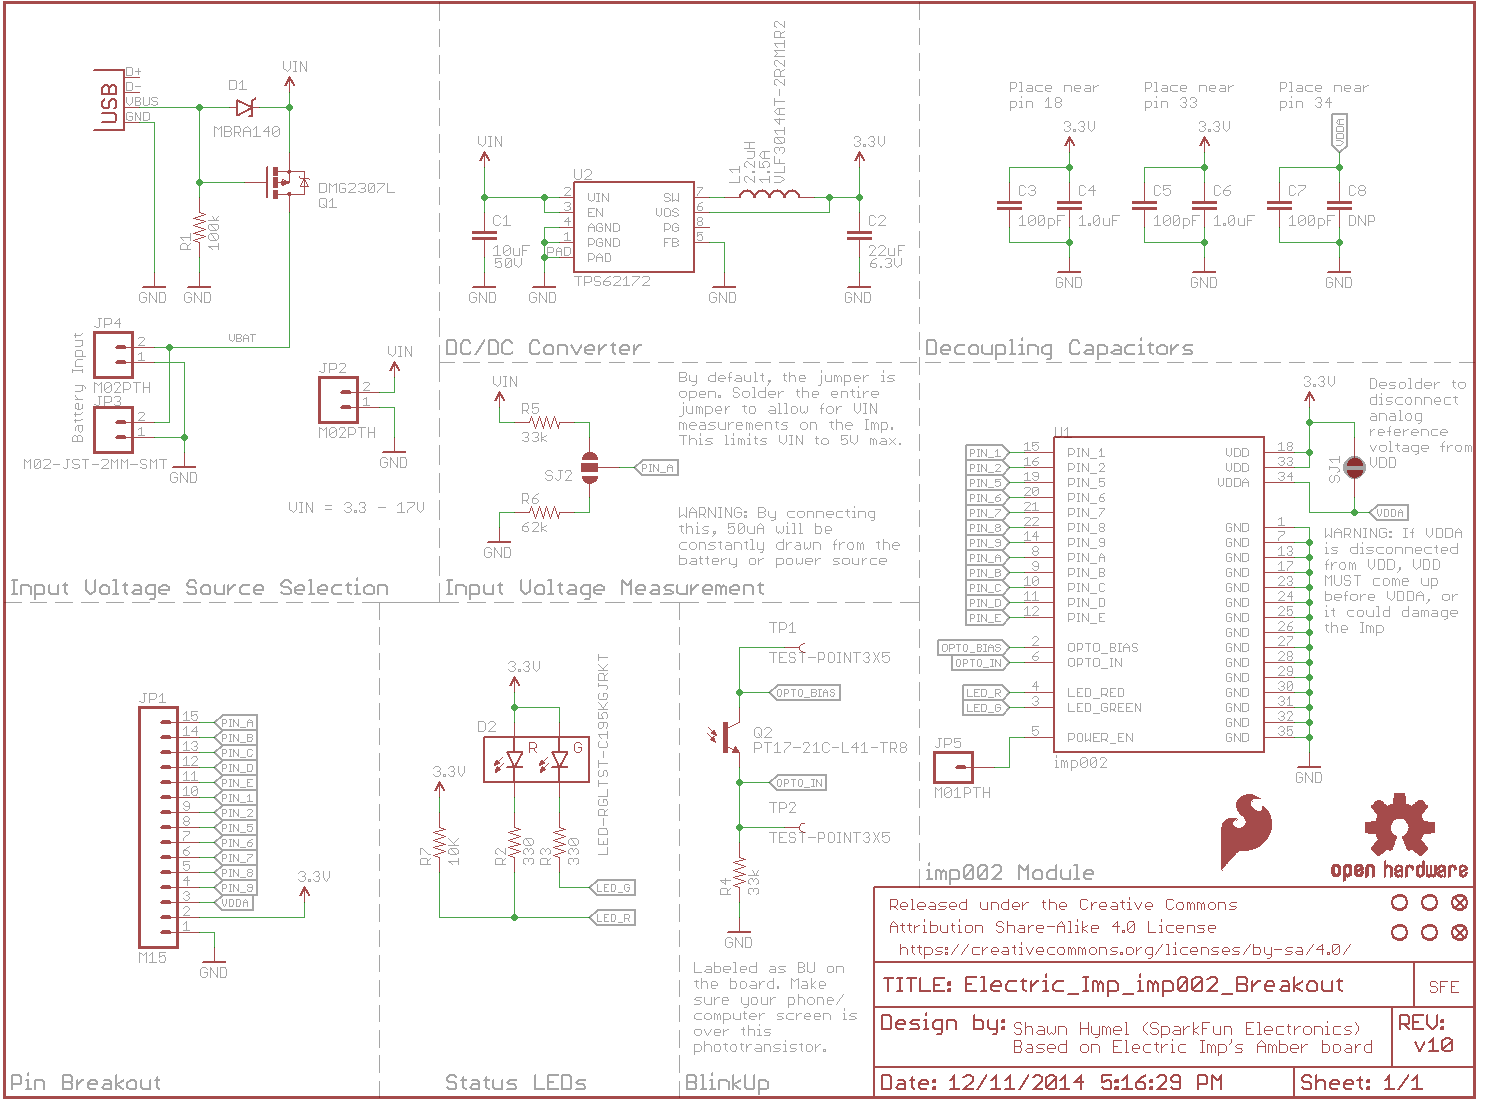 Electric_Imp_imp002_Breakout_schematic electric imp breakout hookup guide learn sparkfun com